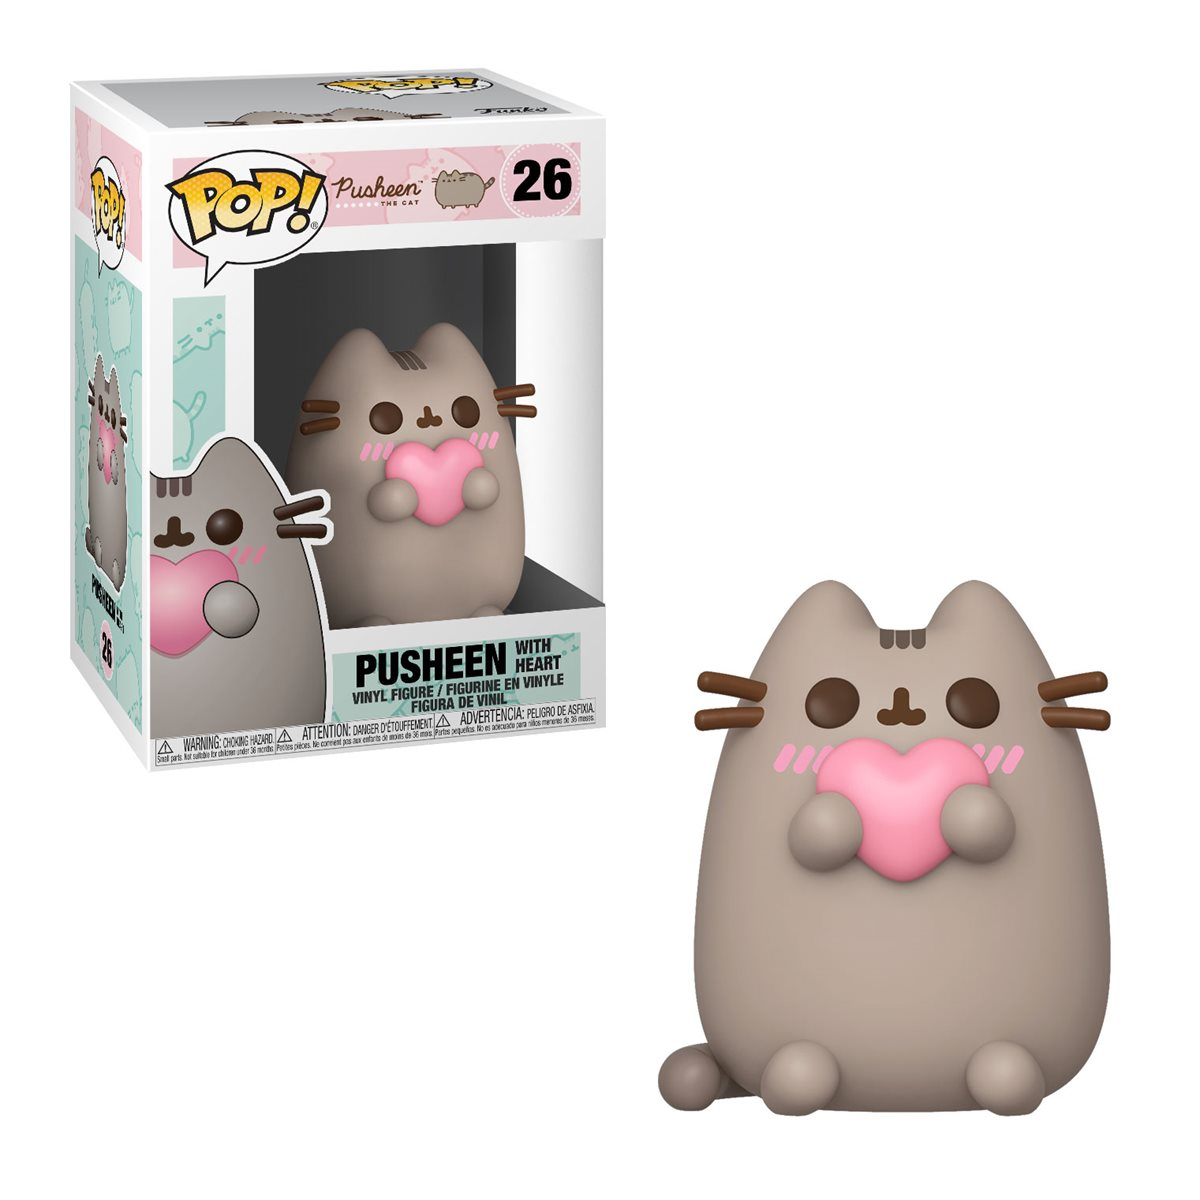 POP! Pusheen 26: Pusheen with Heart